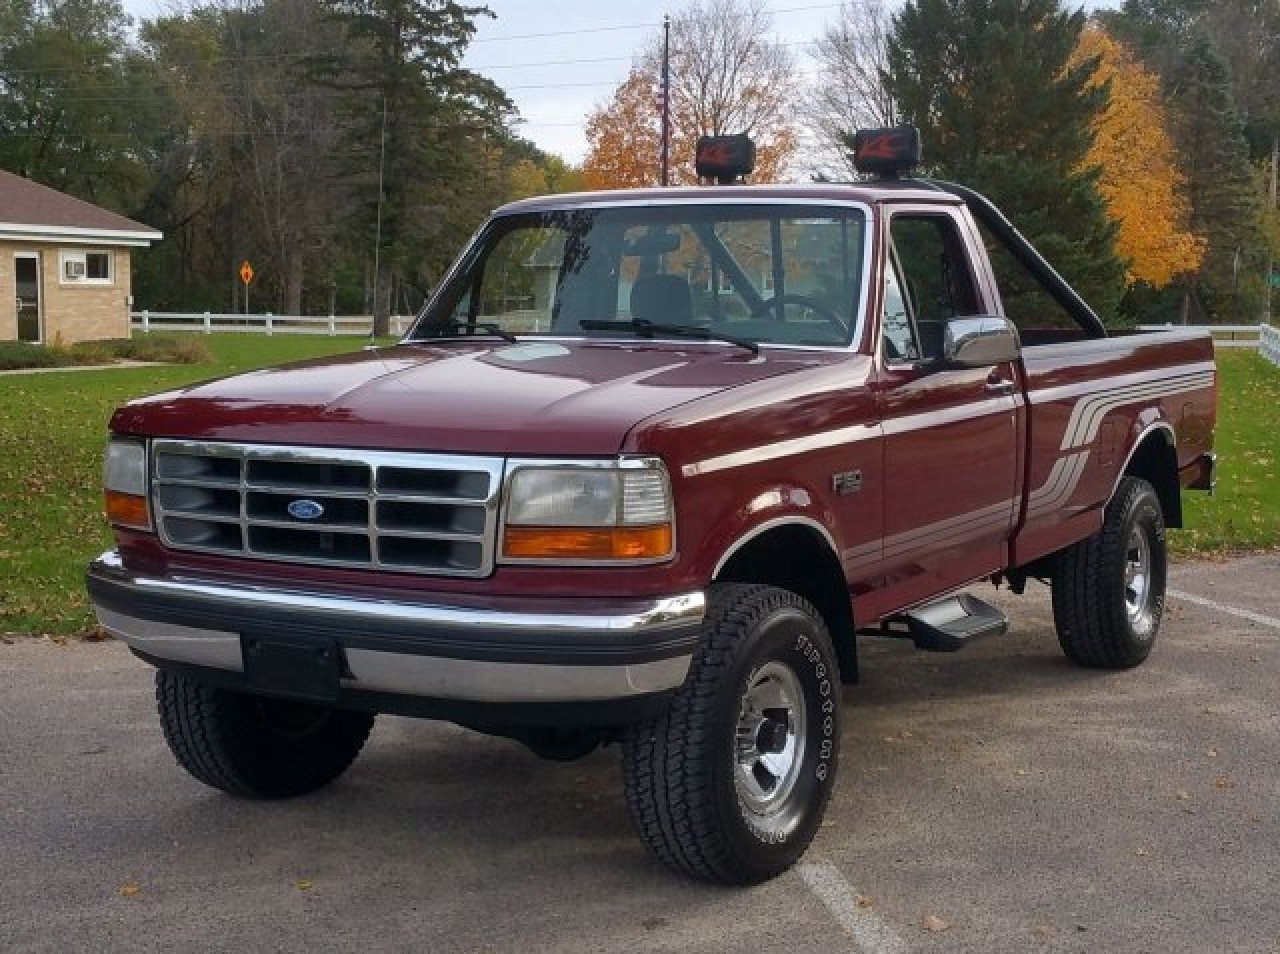 Paint Colors For Trucks >> 1992 Ford F150 for sale near Silver Creek, Minnesota 55358 - Classics on Autotrader